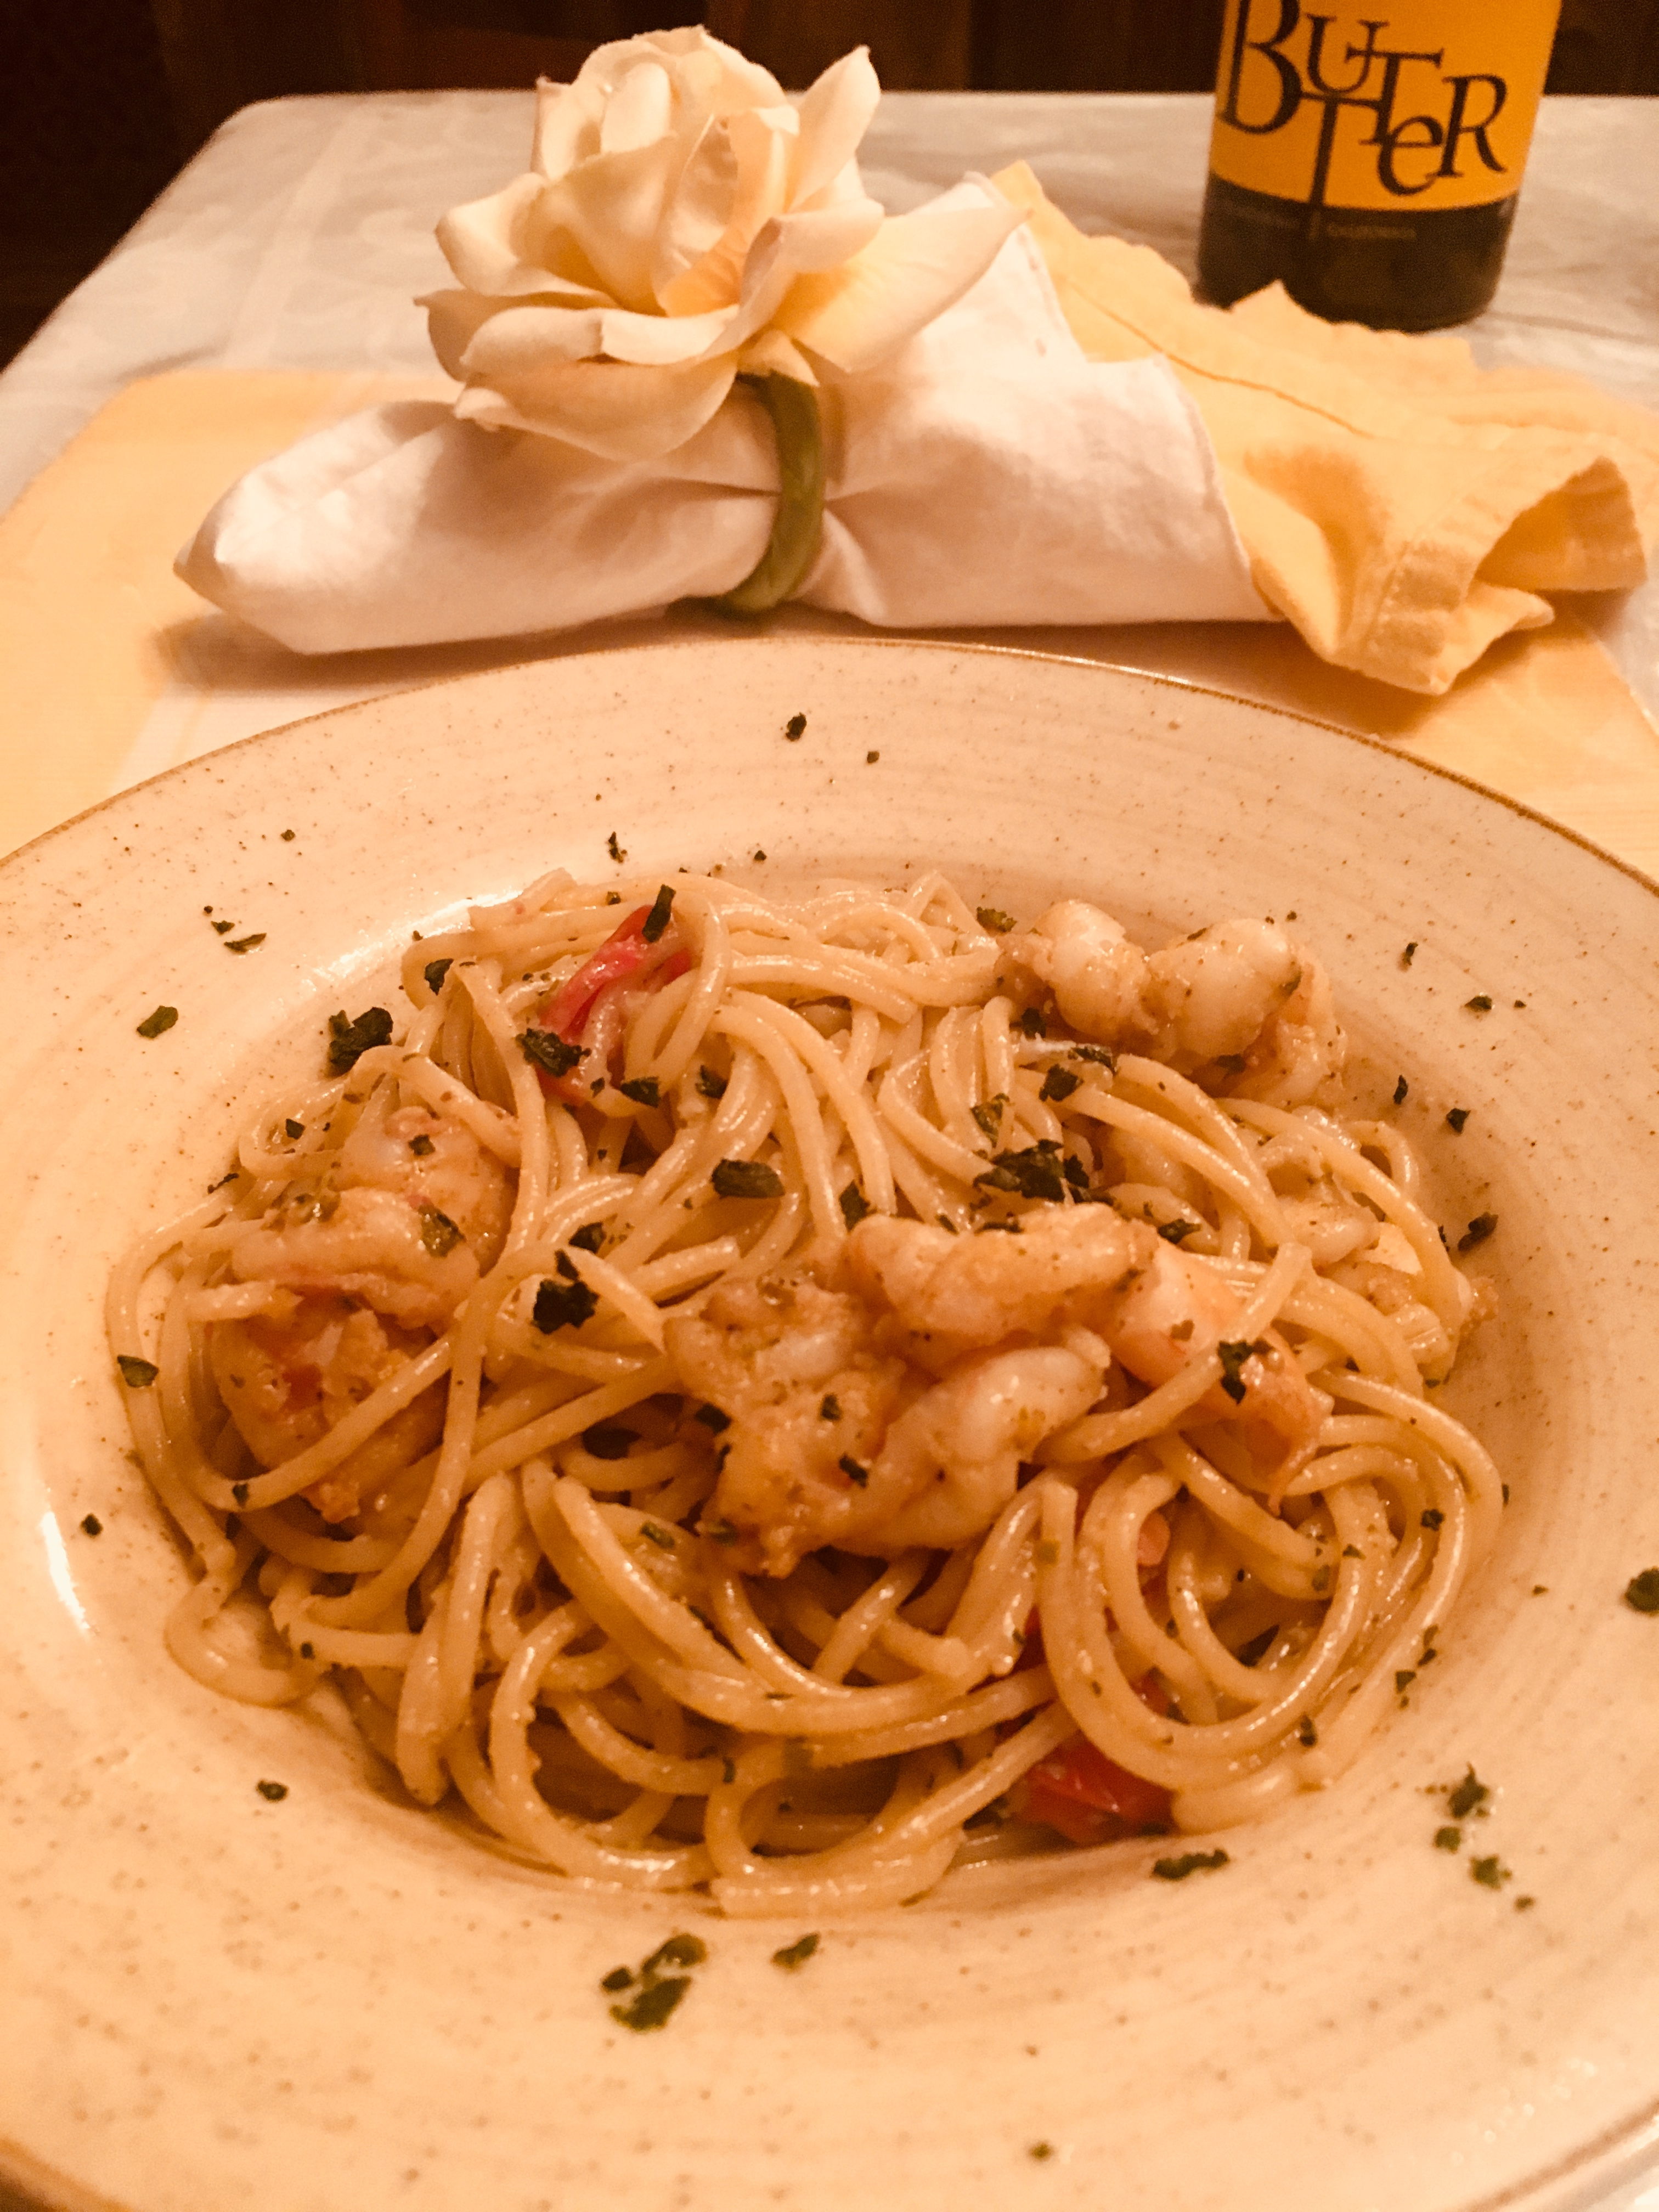 Shrimp Pasta with Pesto Sauce